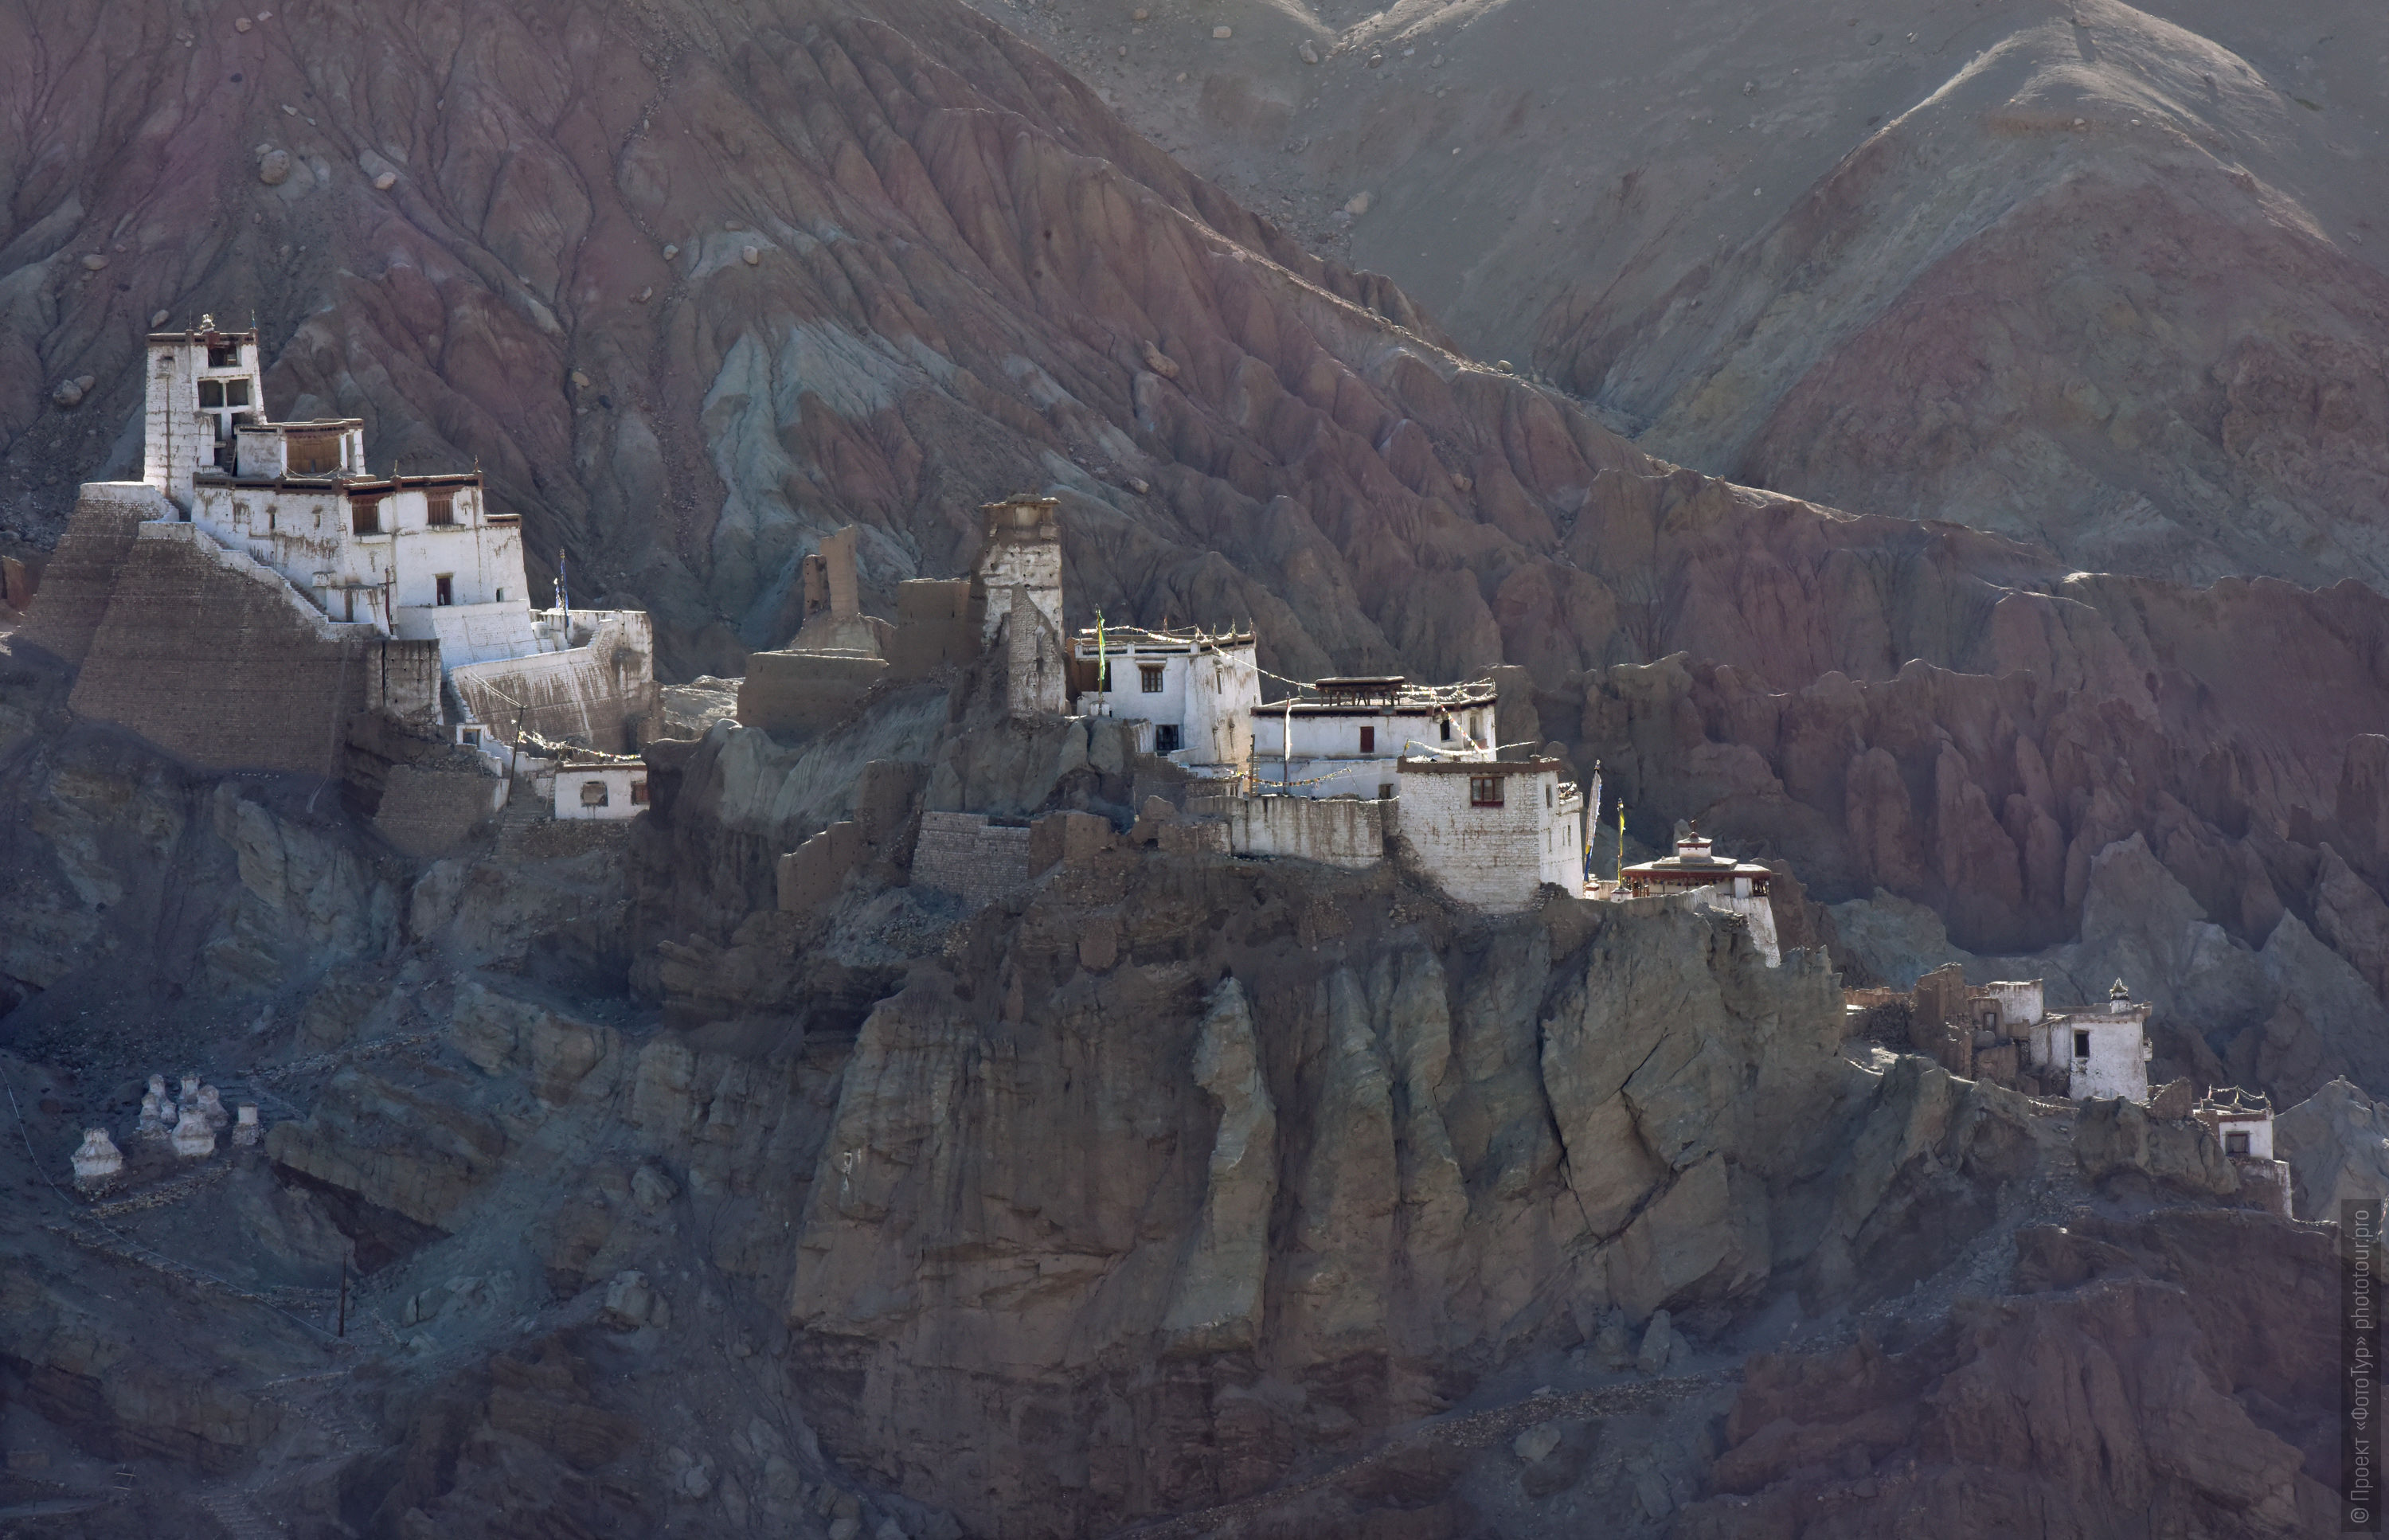 Buddhist monastery of Basgo Gonpa. Photo tour to Tibet for the Winter Mysteries in Ladakh, Stok and Matho monasteries, 01.03. - 03/10/2020